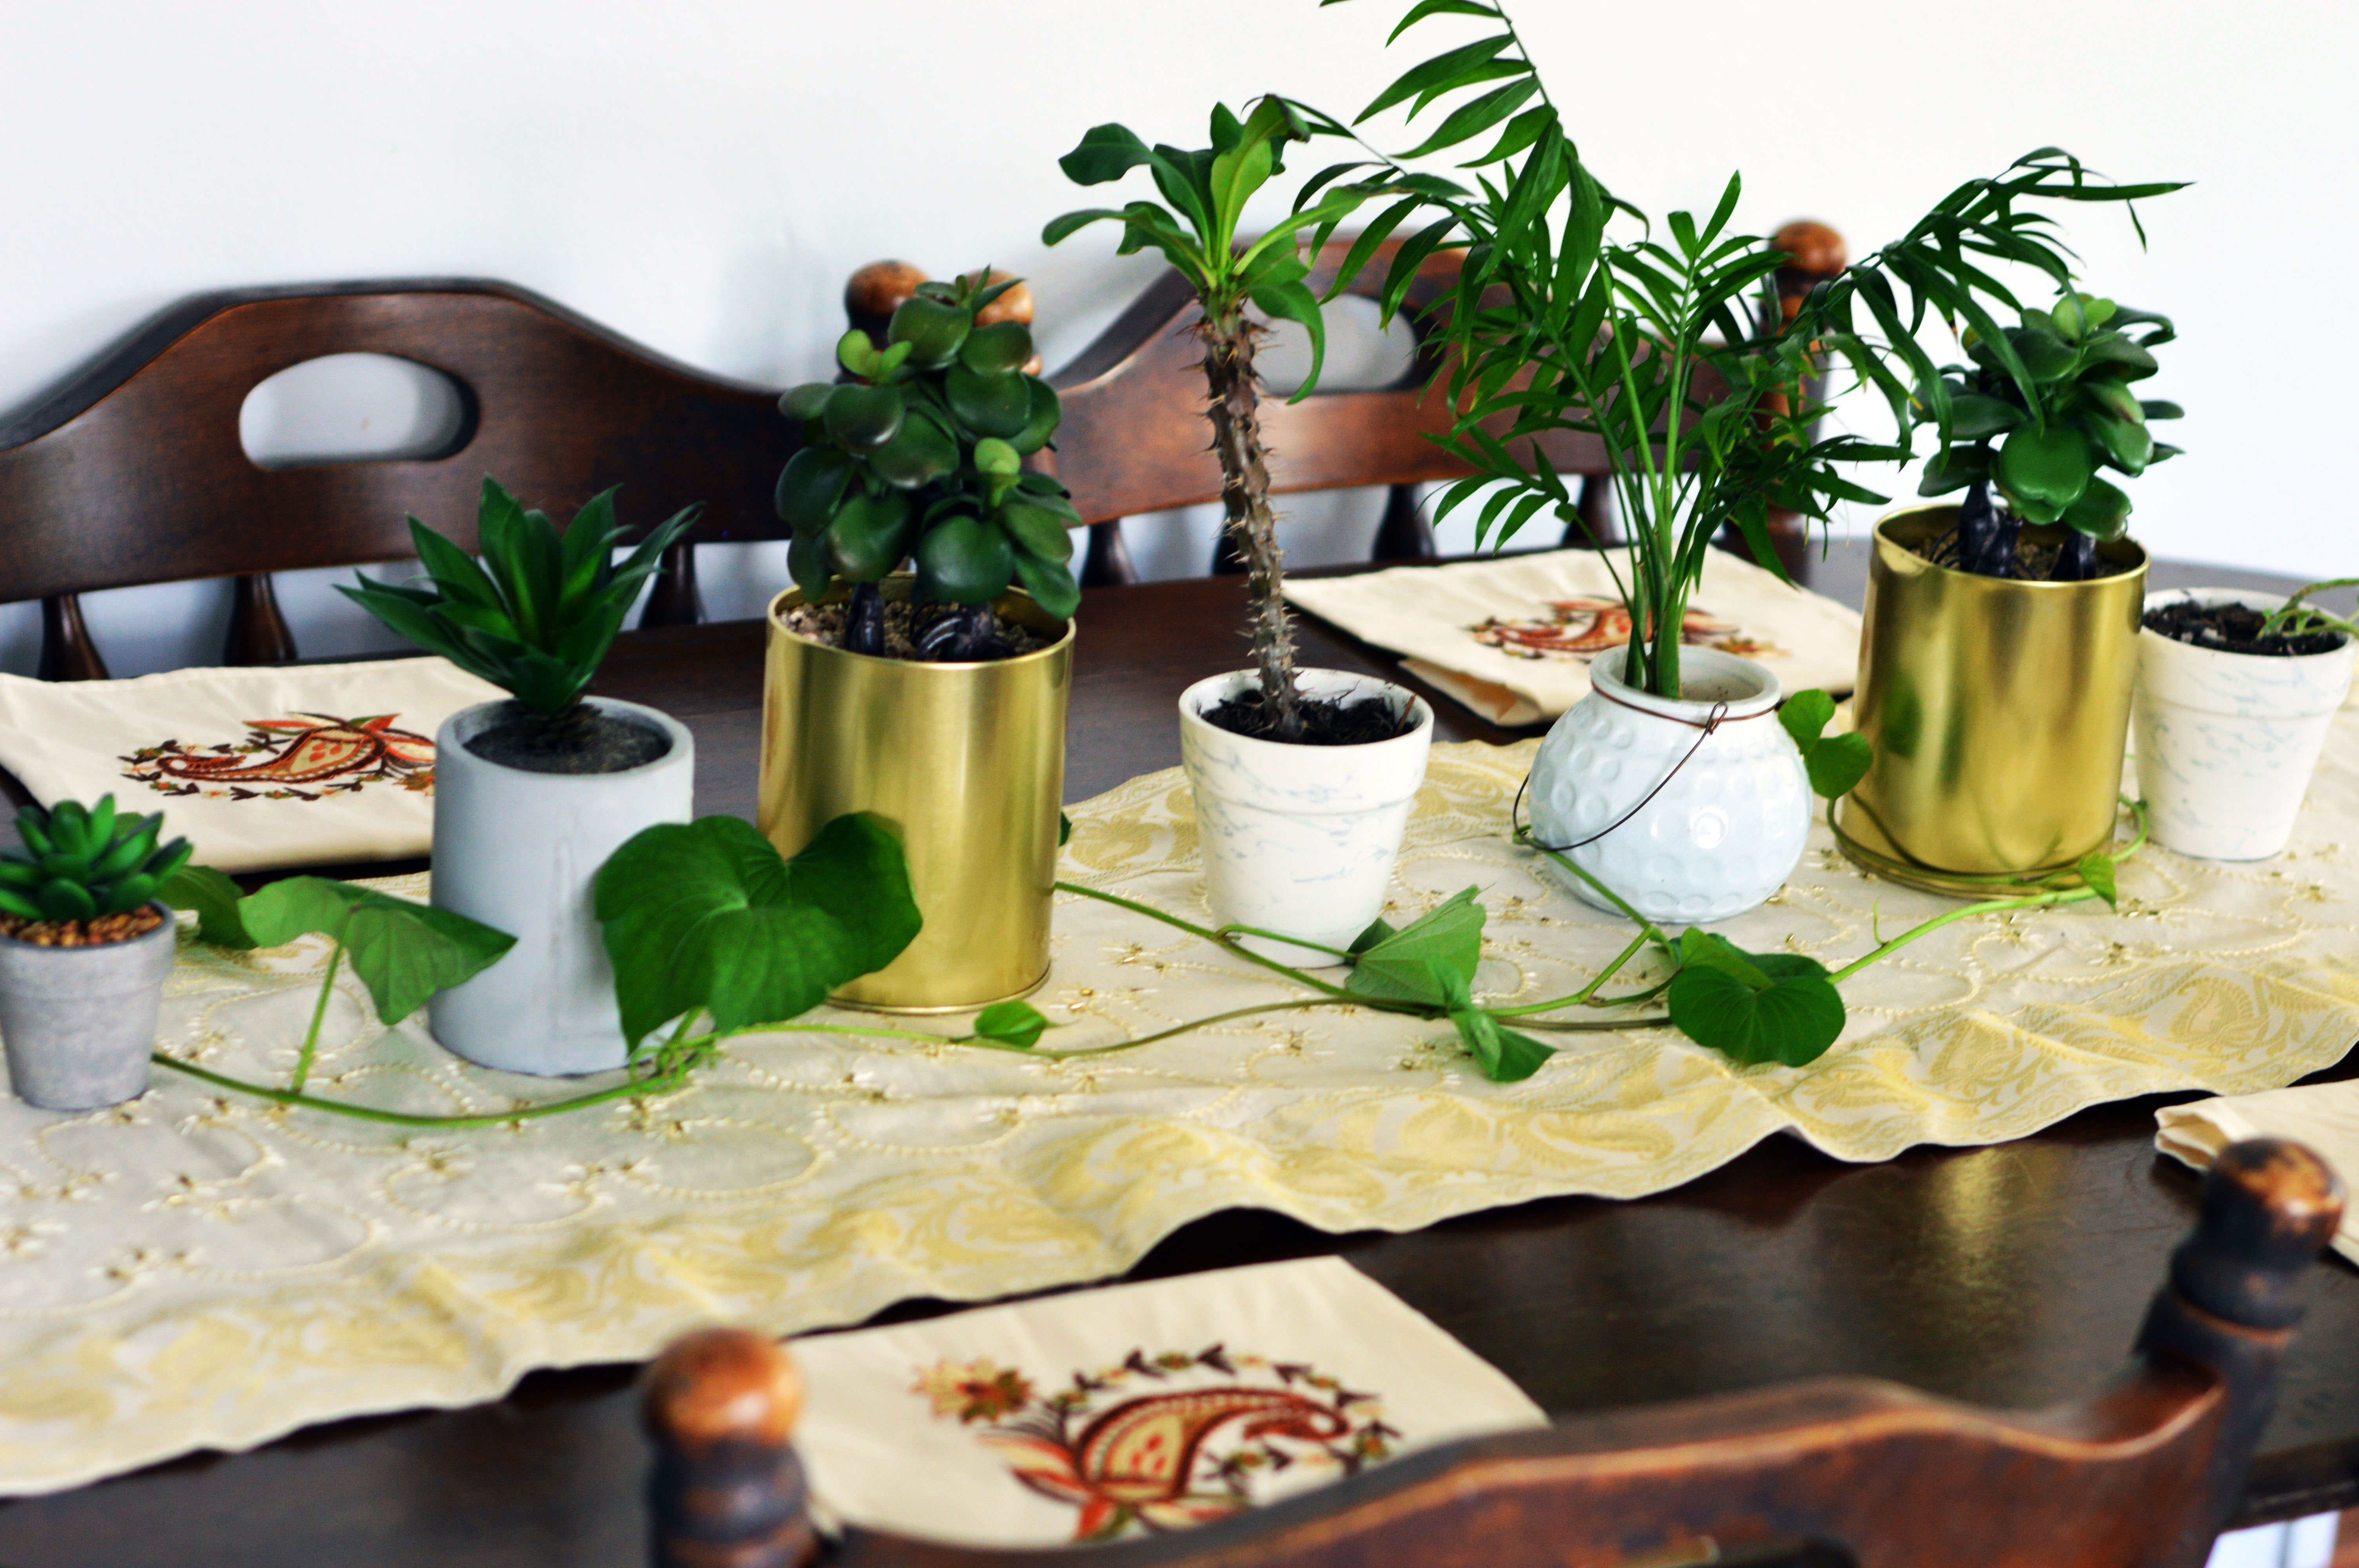 boho-table-layout-with-plants-succulents